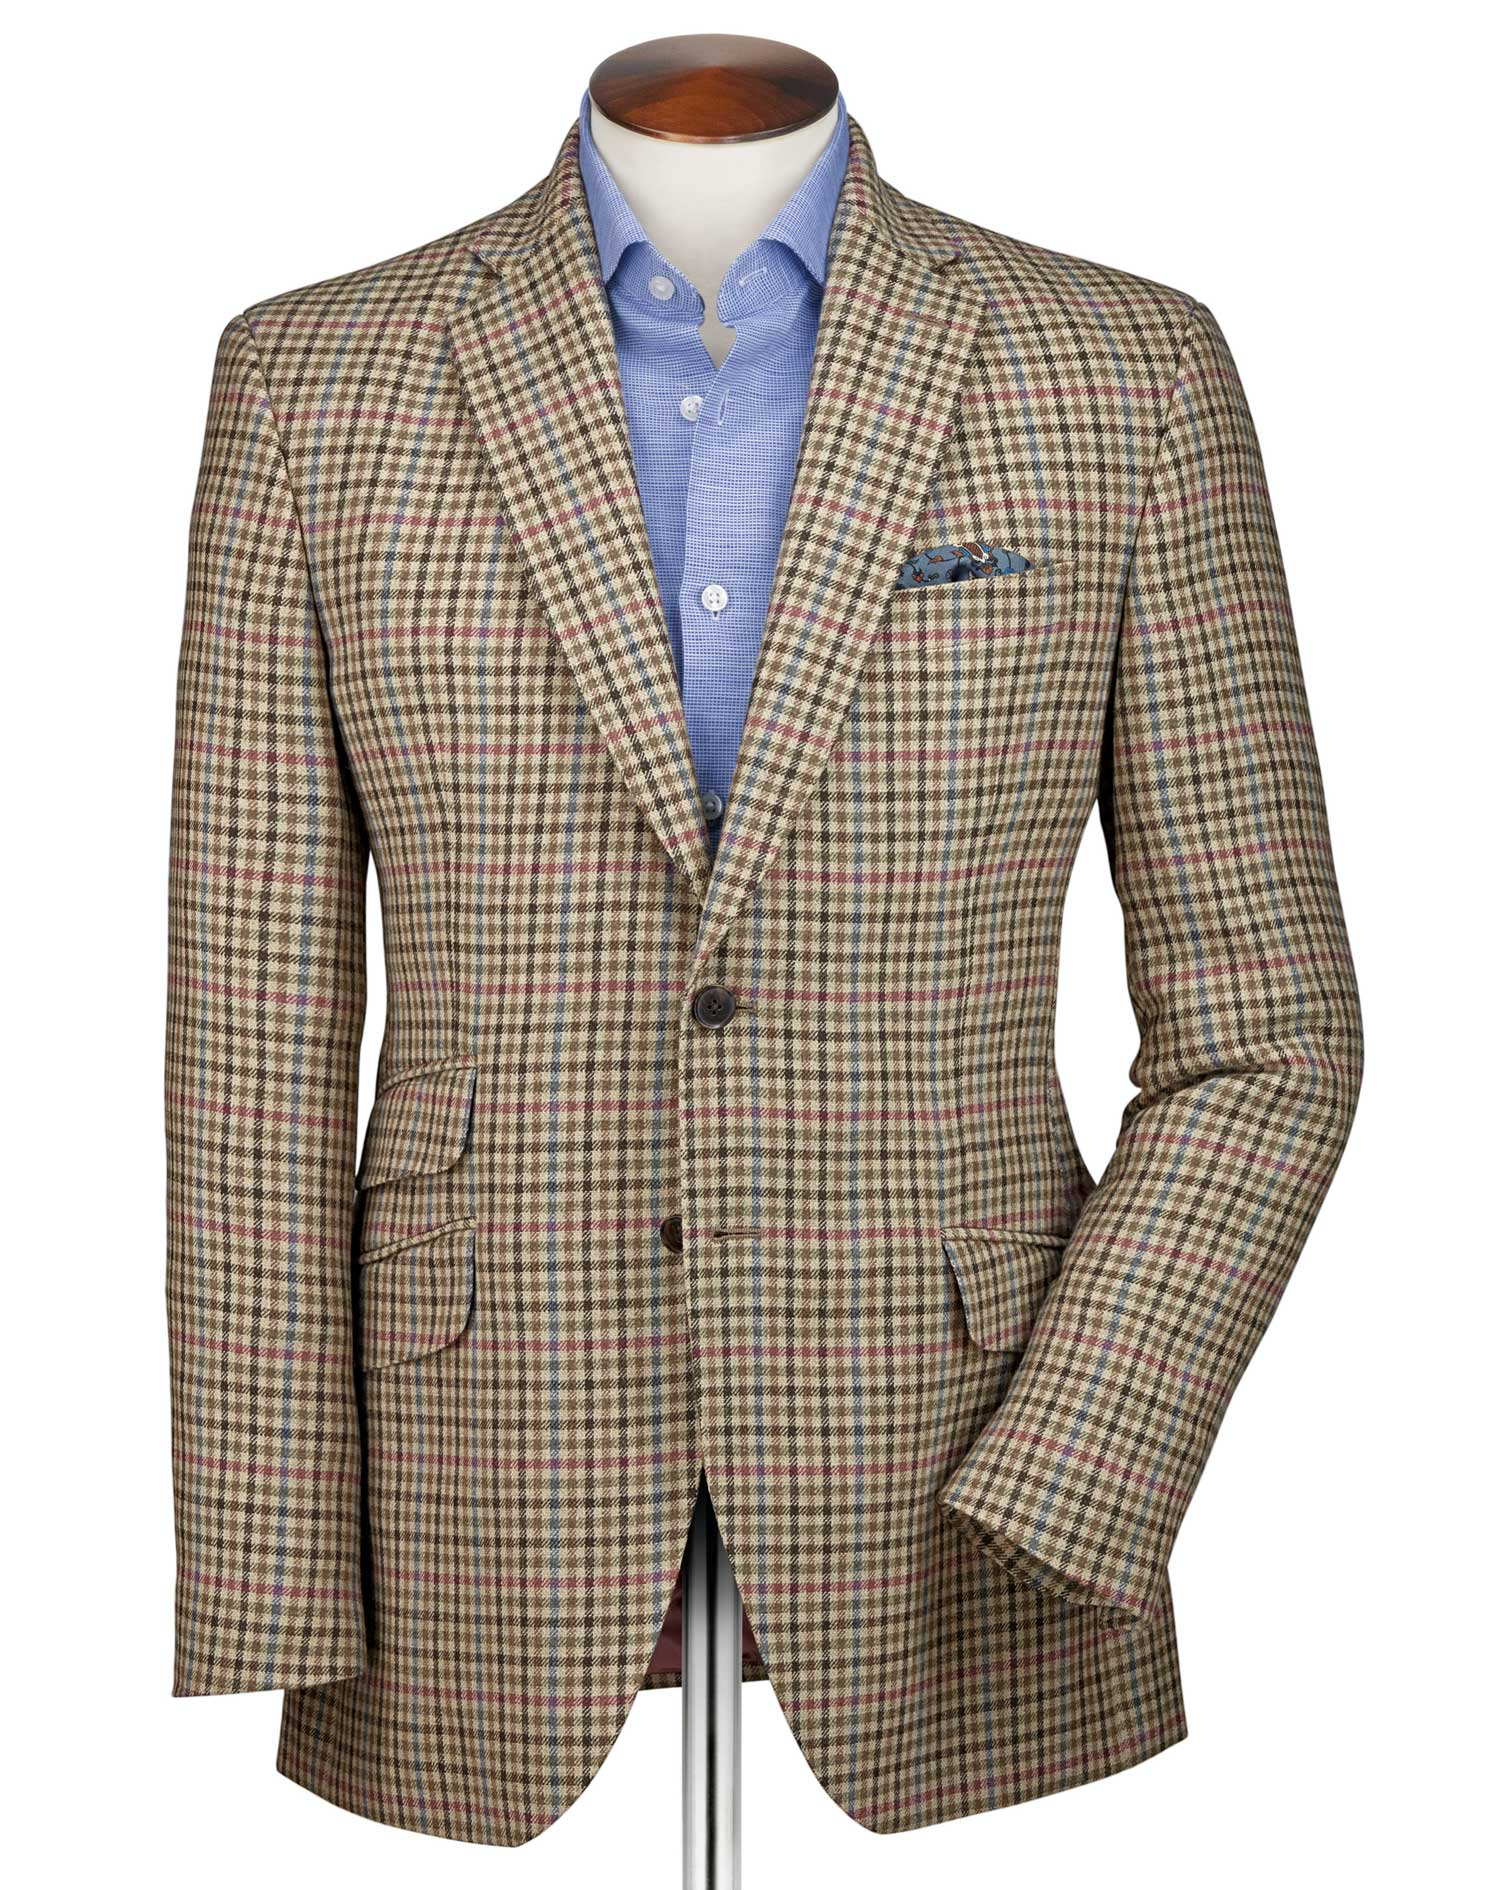 Classic Fit Beige Checkered Luxury Border Tweed Wool Jacket Size 38 Long by Charles Tyrwhitt